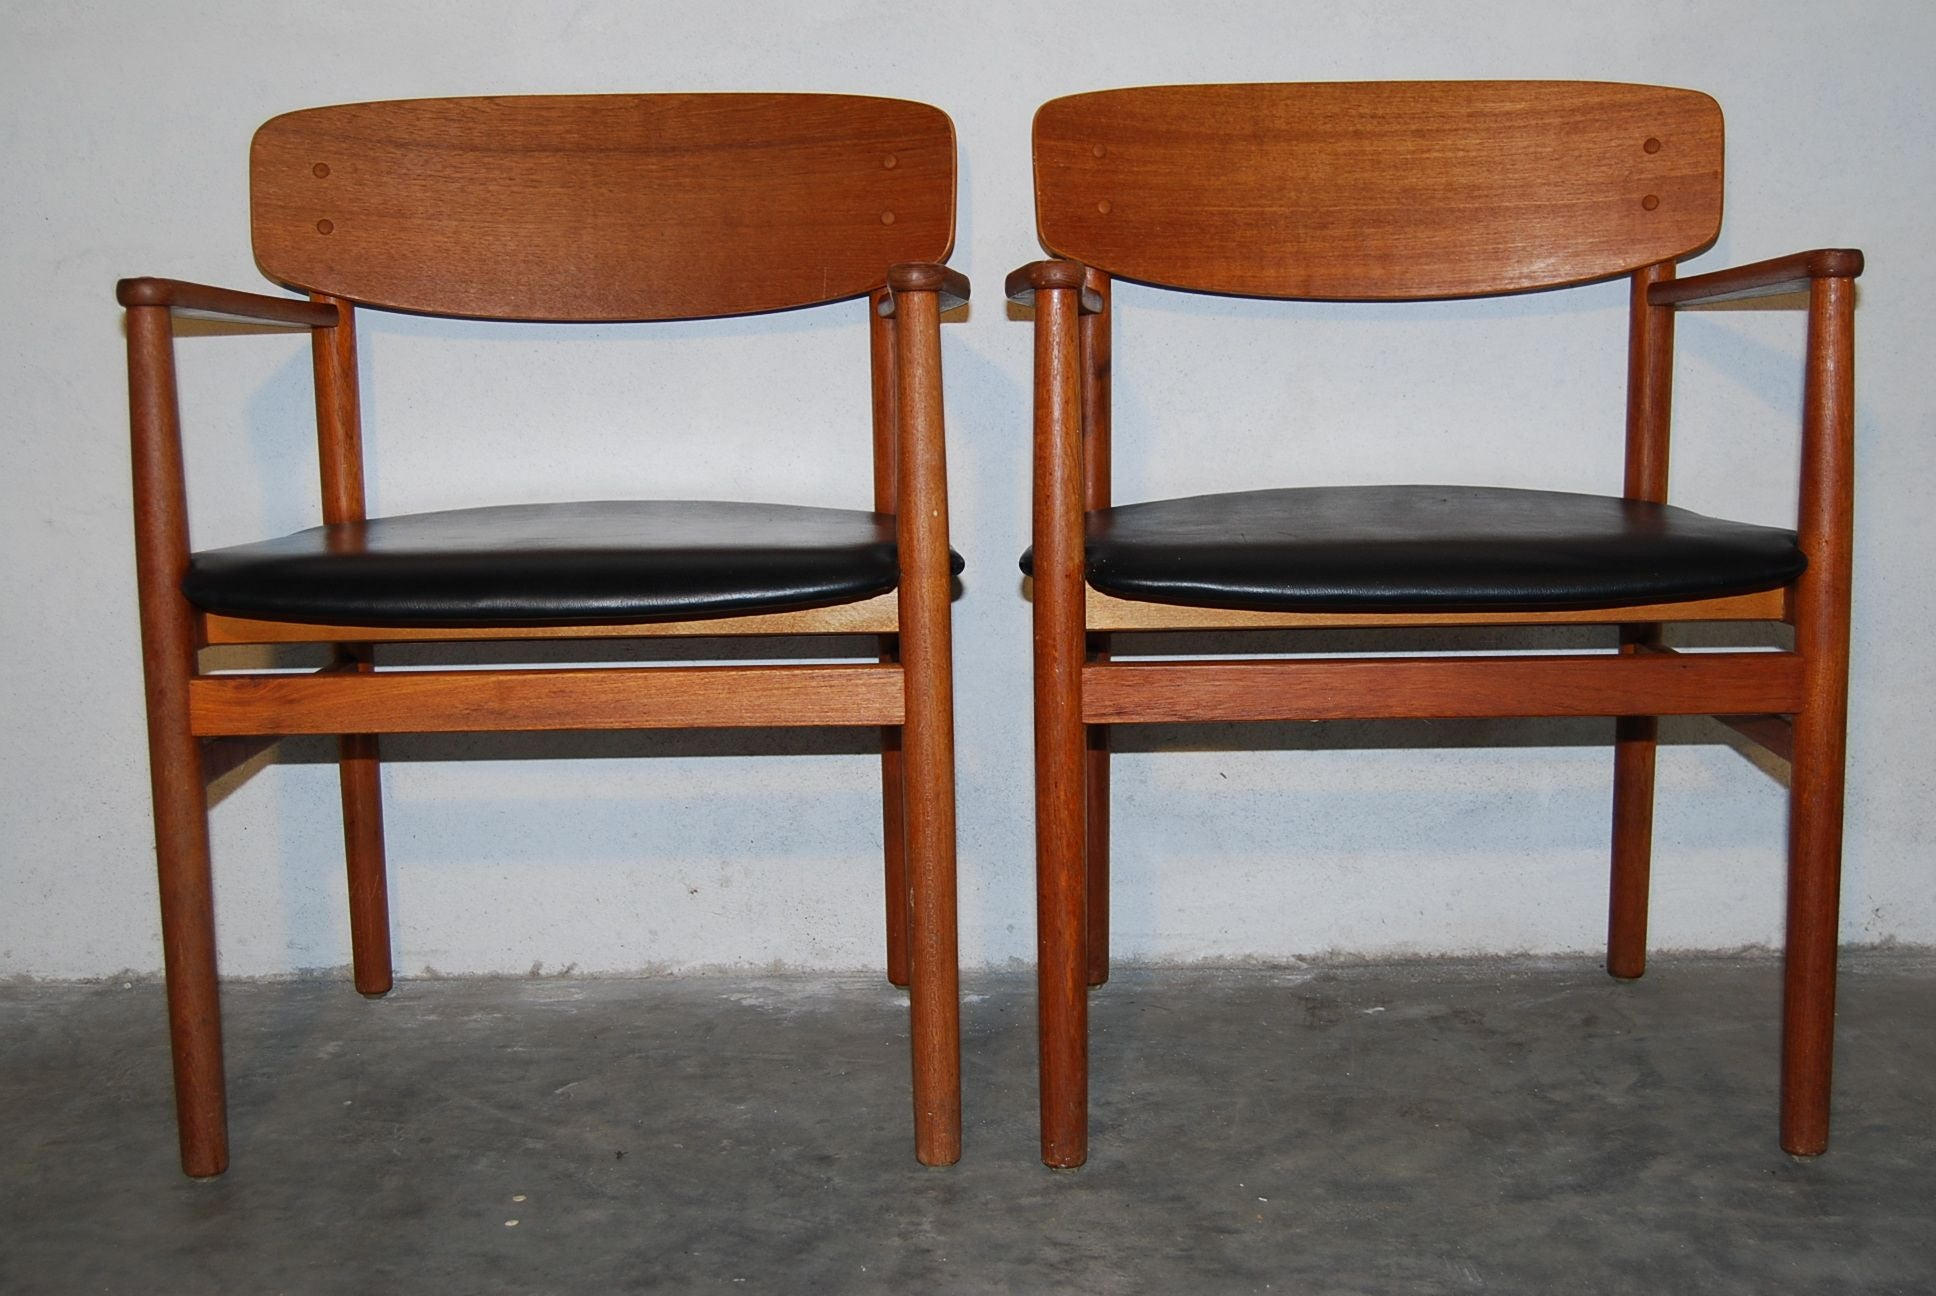 Chase & Sorensen Pair of Armchairs by Kvetny & Sonner